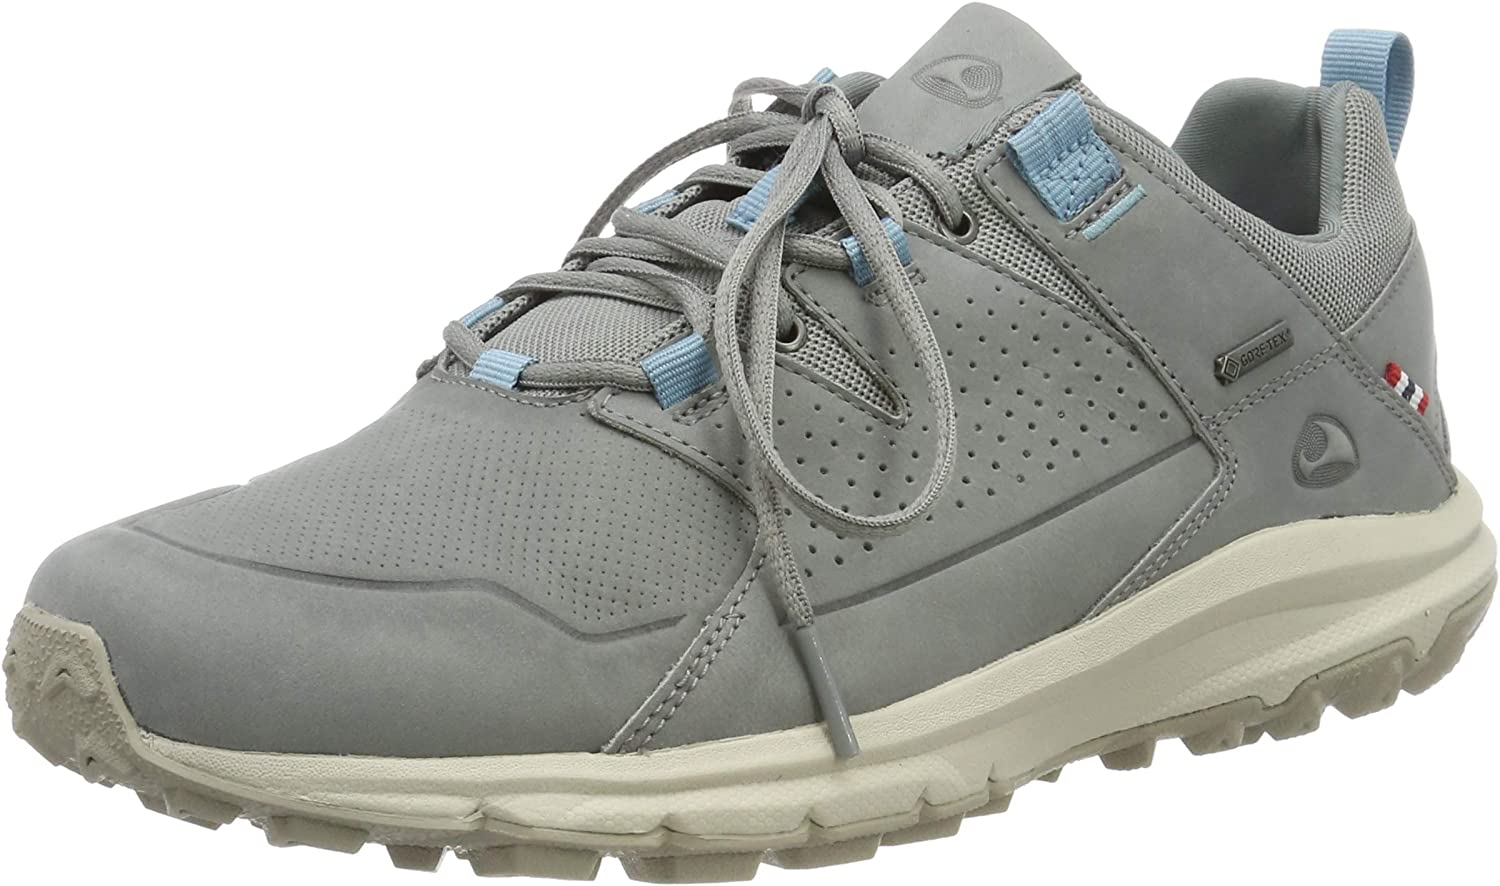 VIKING Women's Tulsa Mall Multisport Cross Trainers We OFFer at cheap prices Outdoor